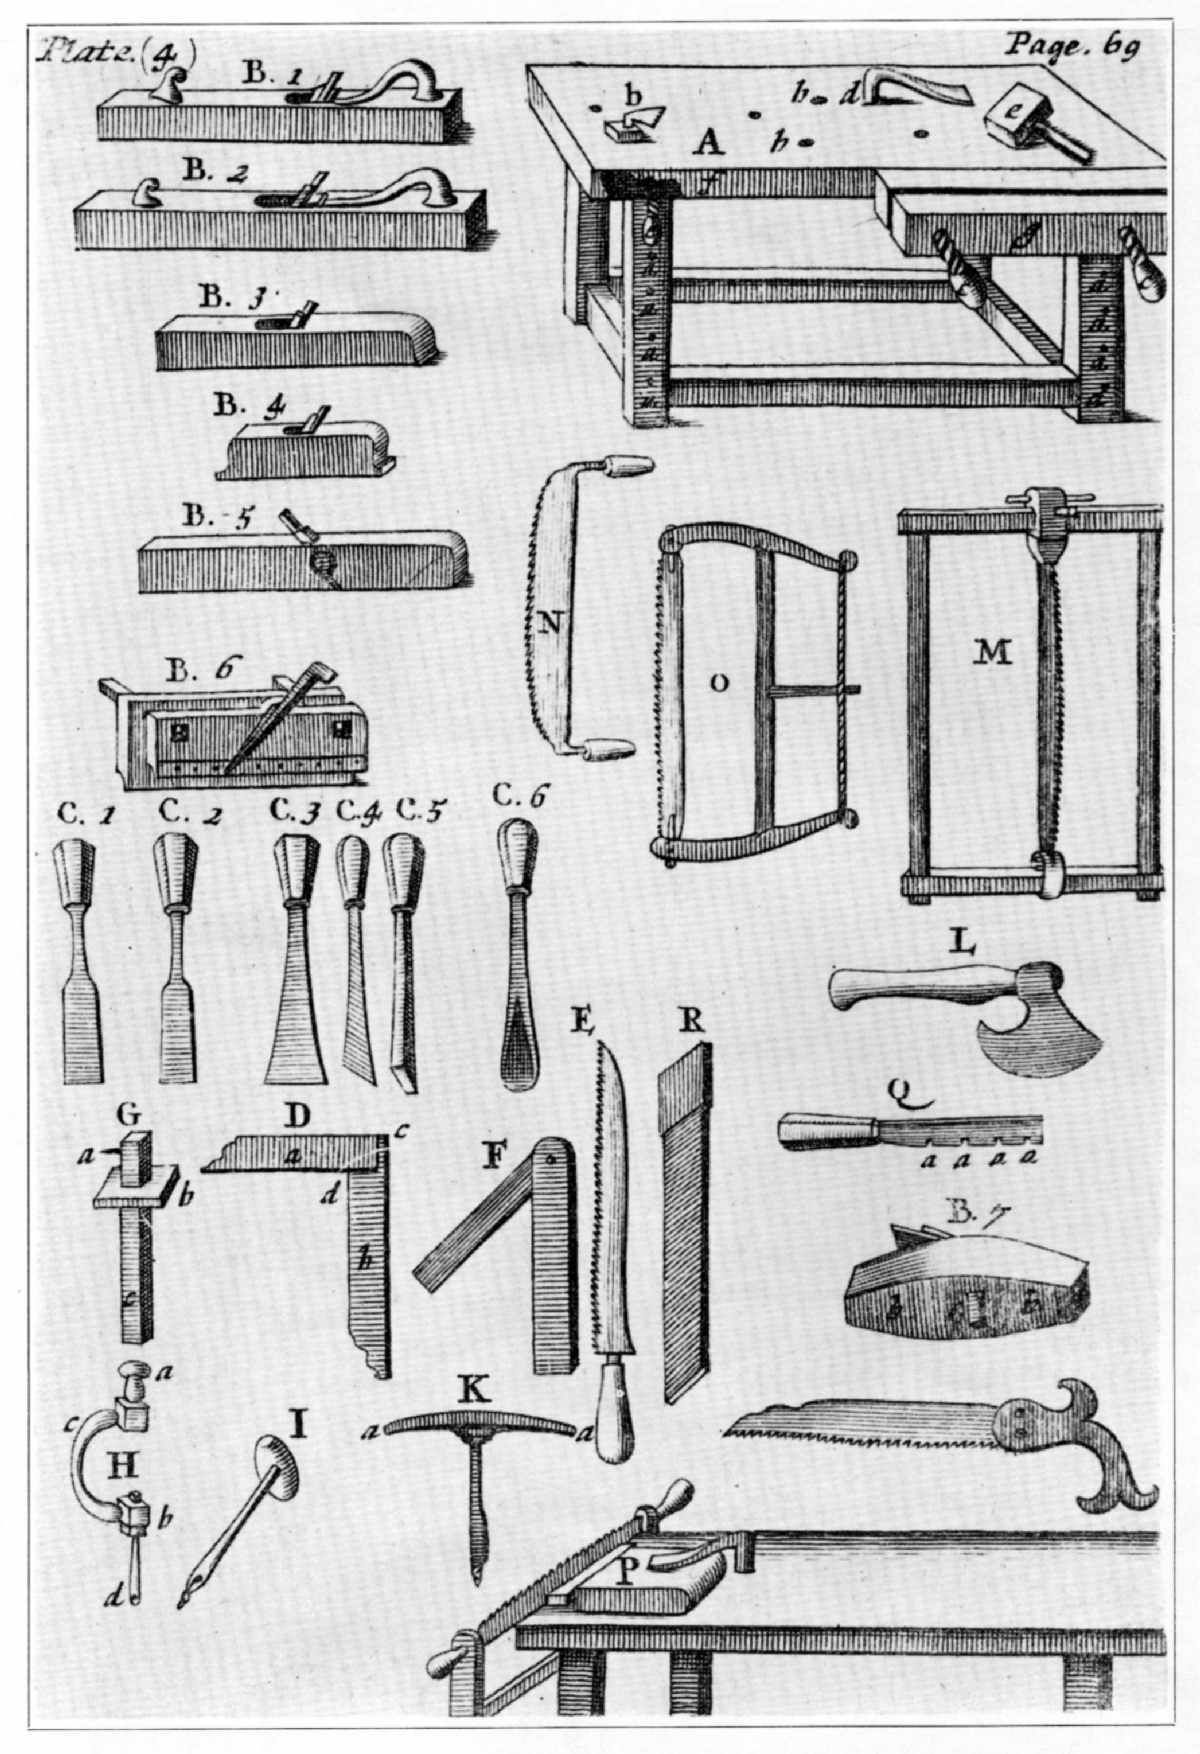 The Project Gutenberg EBook of Woodworking Tools 1600-1900, by Peter ...